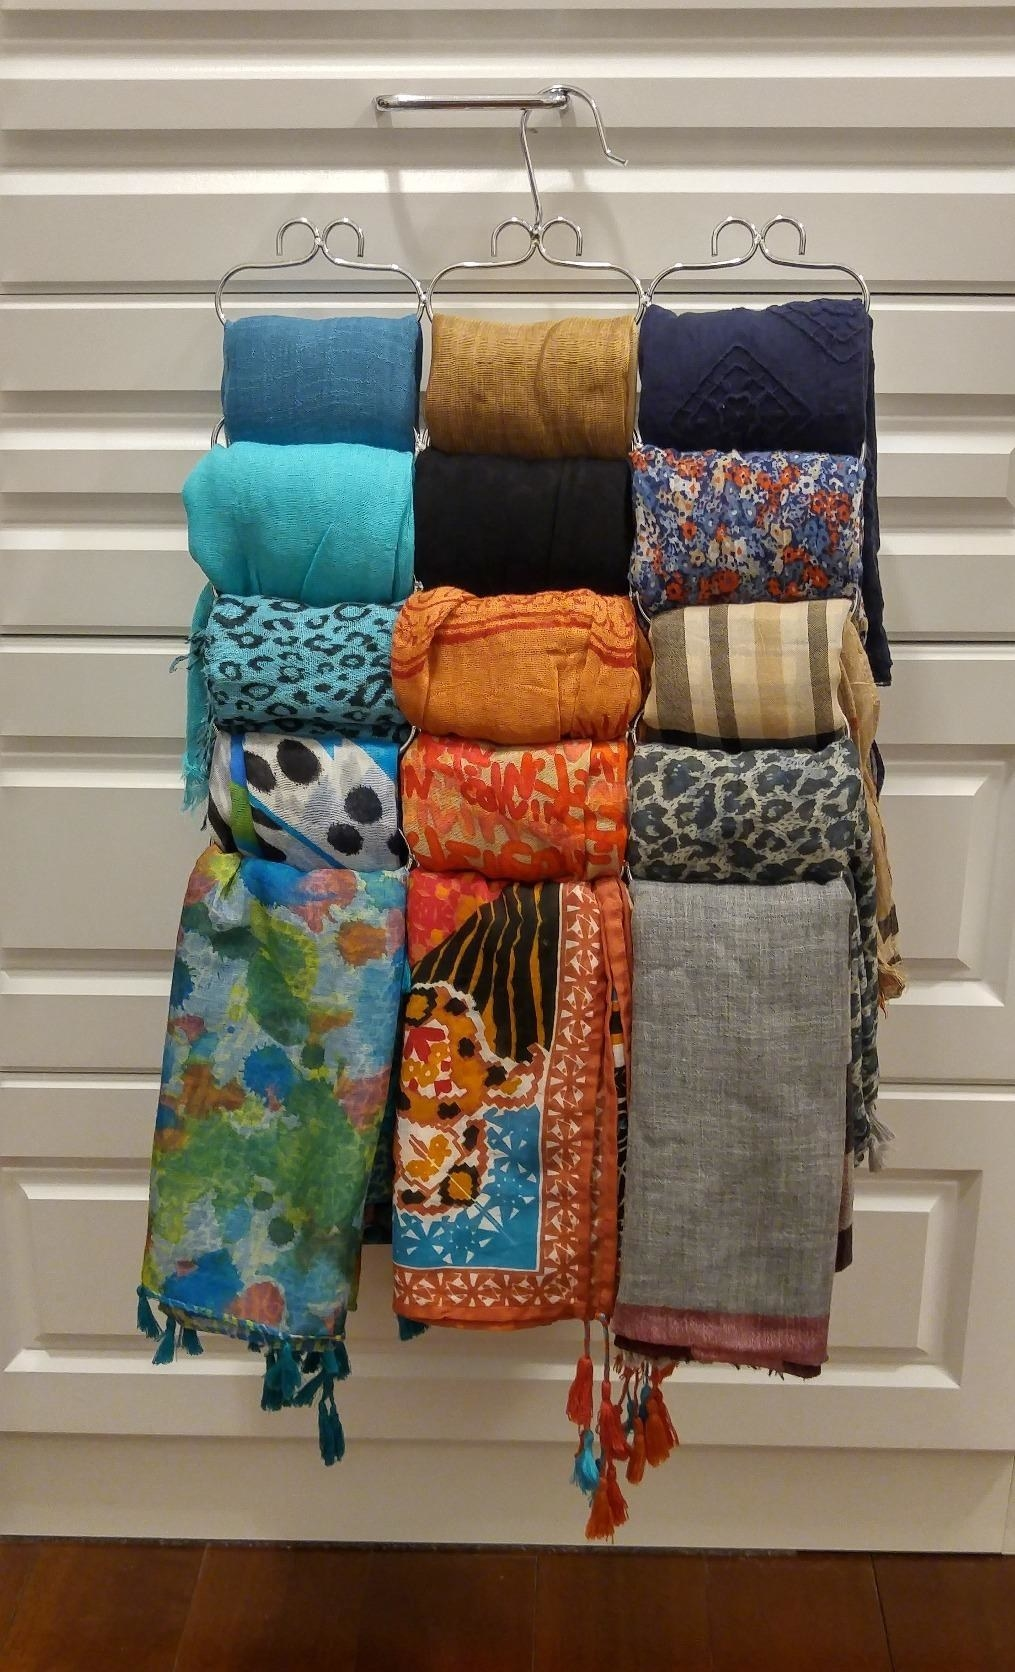 A reviewer's photo of the organizer holding 15 scarves